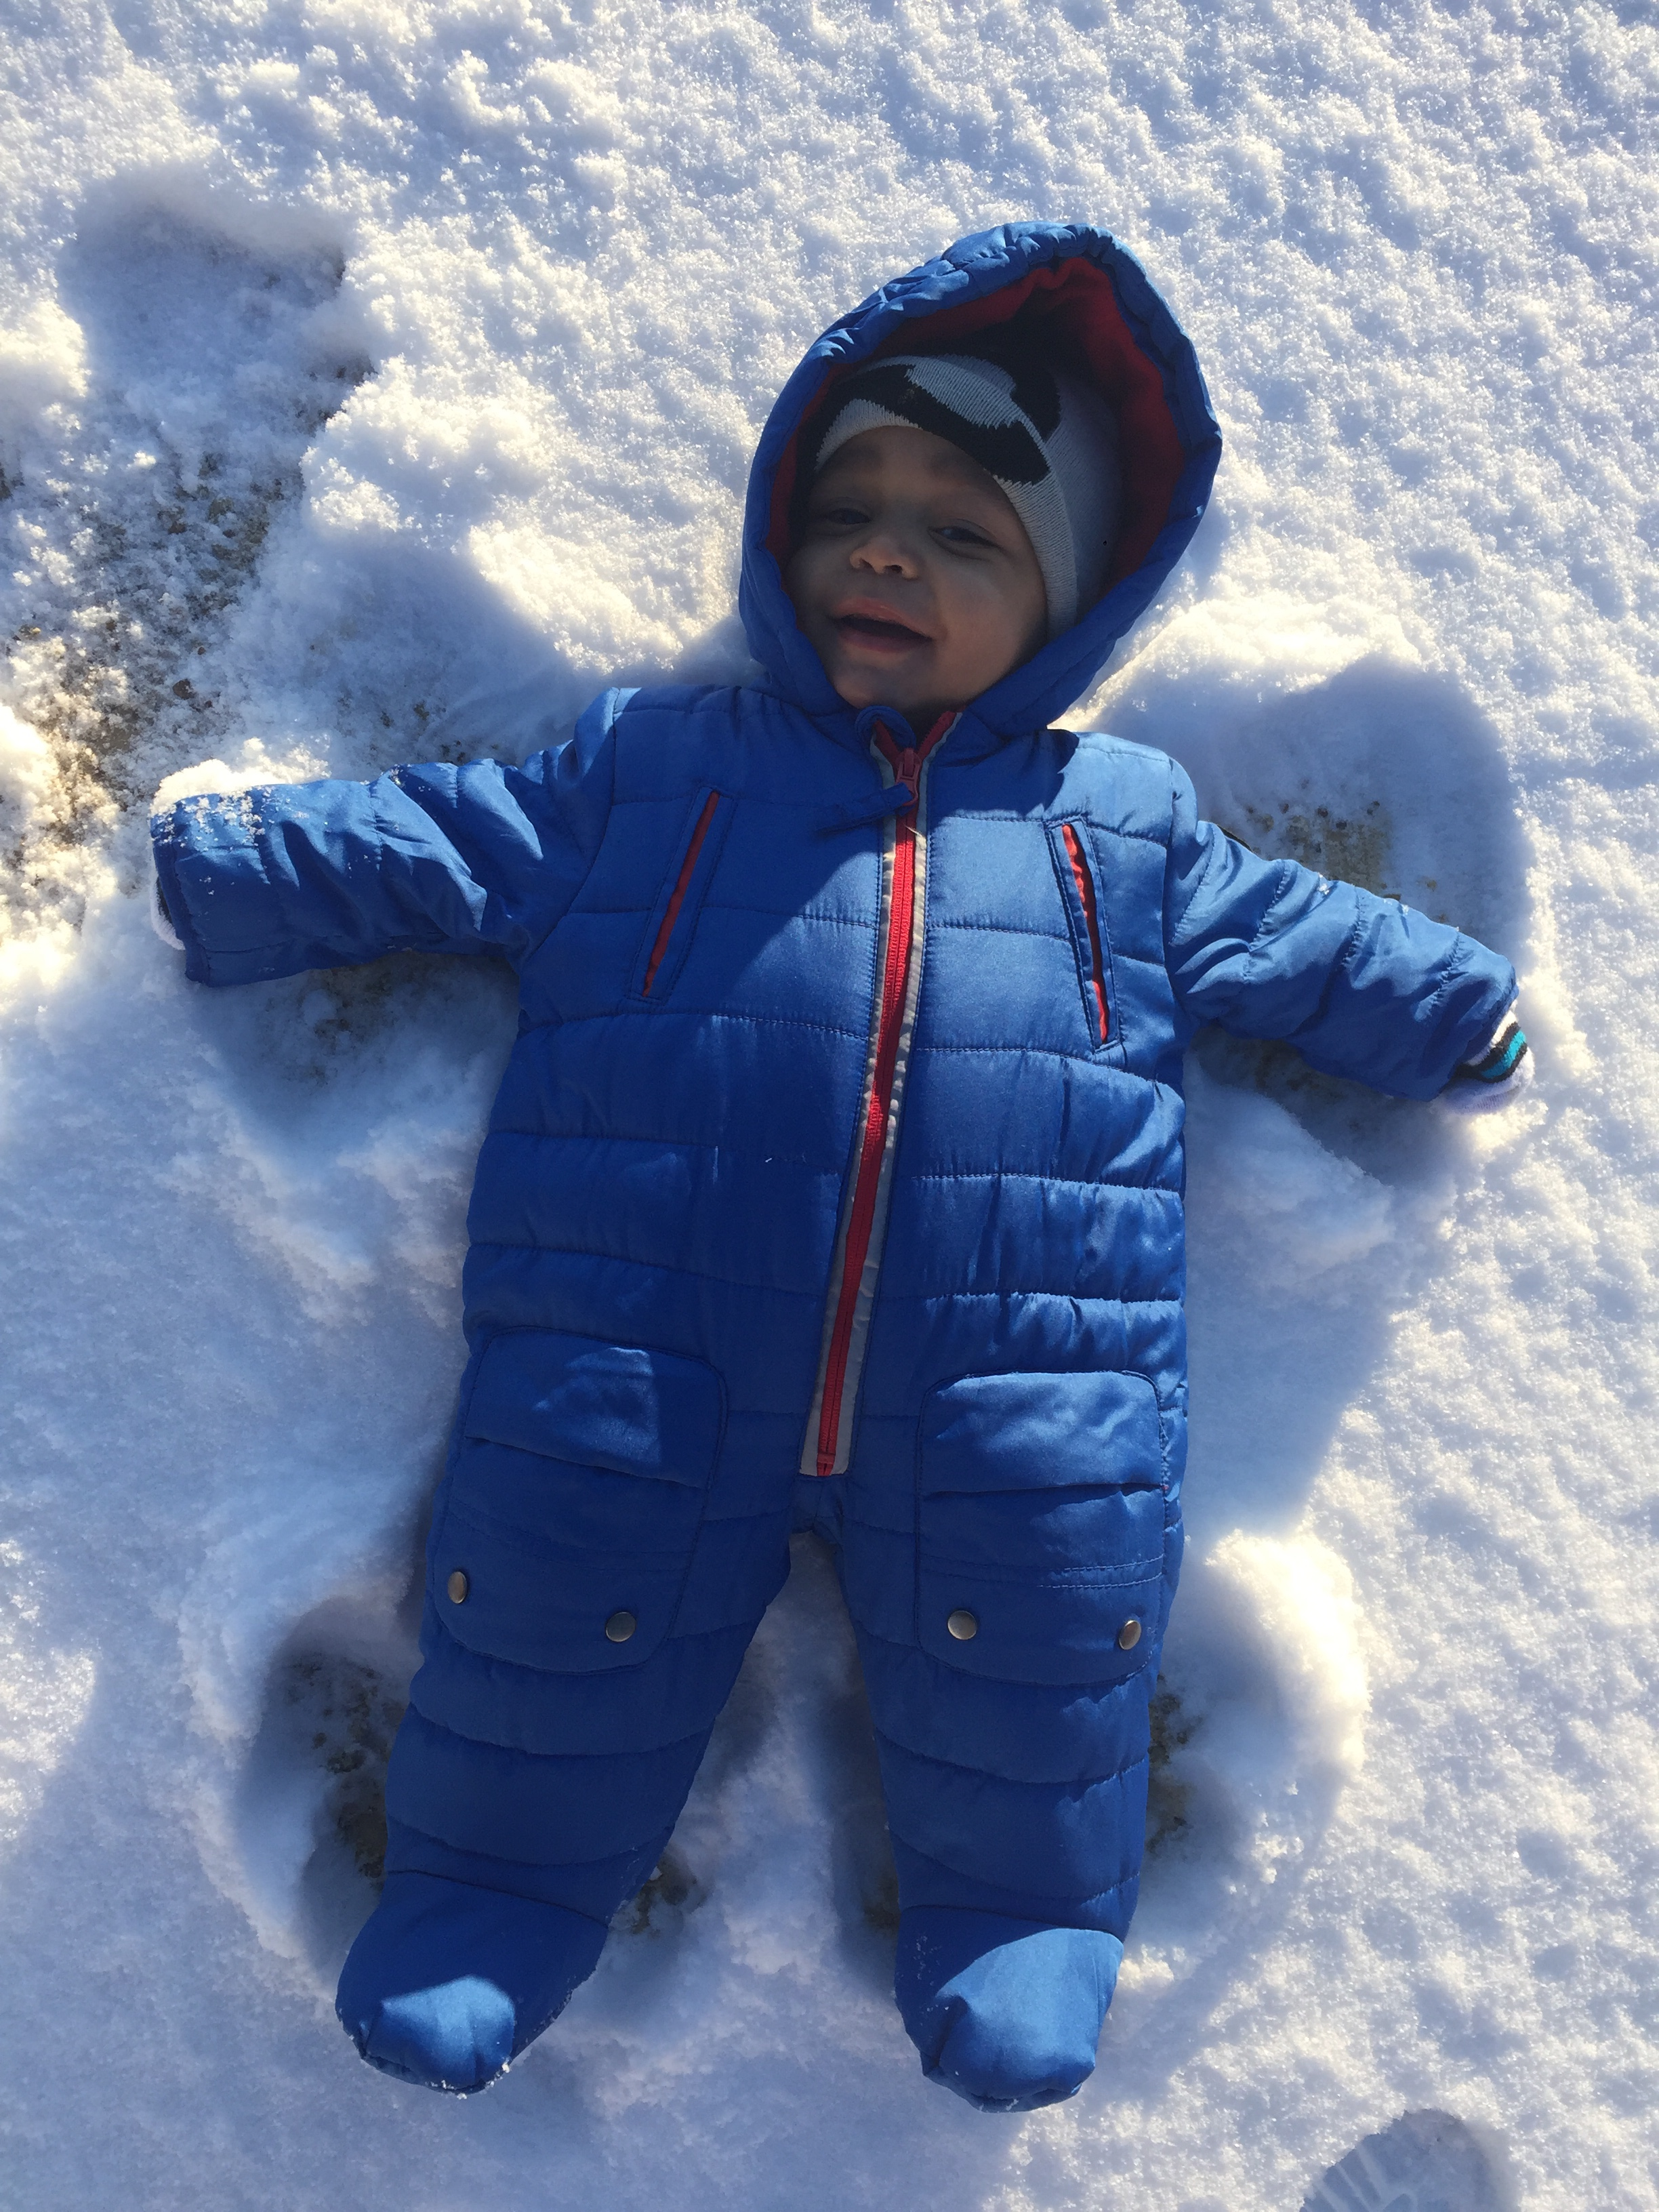 <div class='meta'><div class='origin-logo' data-origin='none'></div><span class='caption-text' data-credit='Monica Escamilla - ABC11 Eyewitness'>7-month-old Ryan's first snow angel!</span></div>